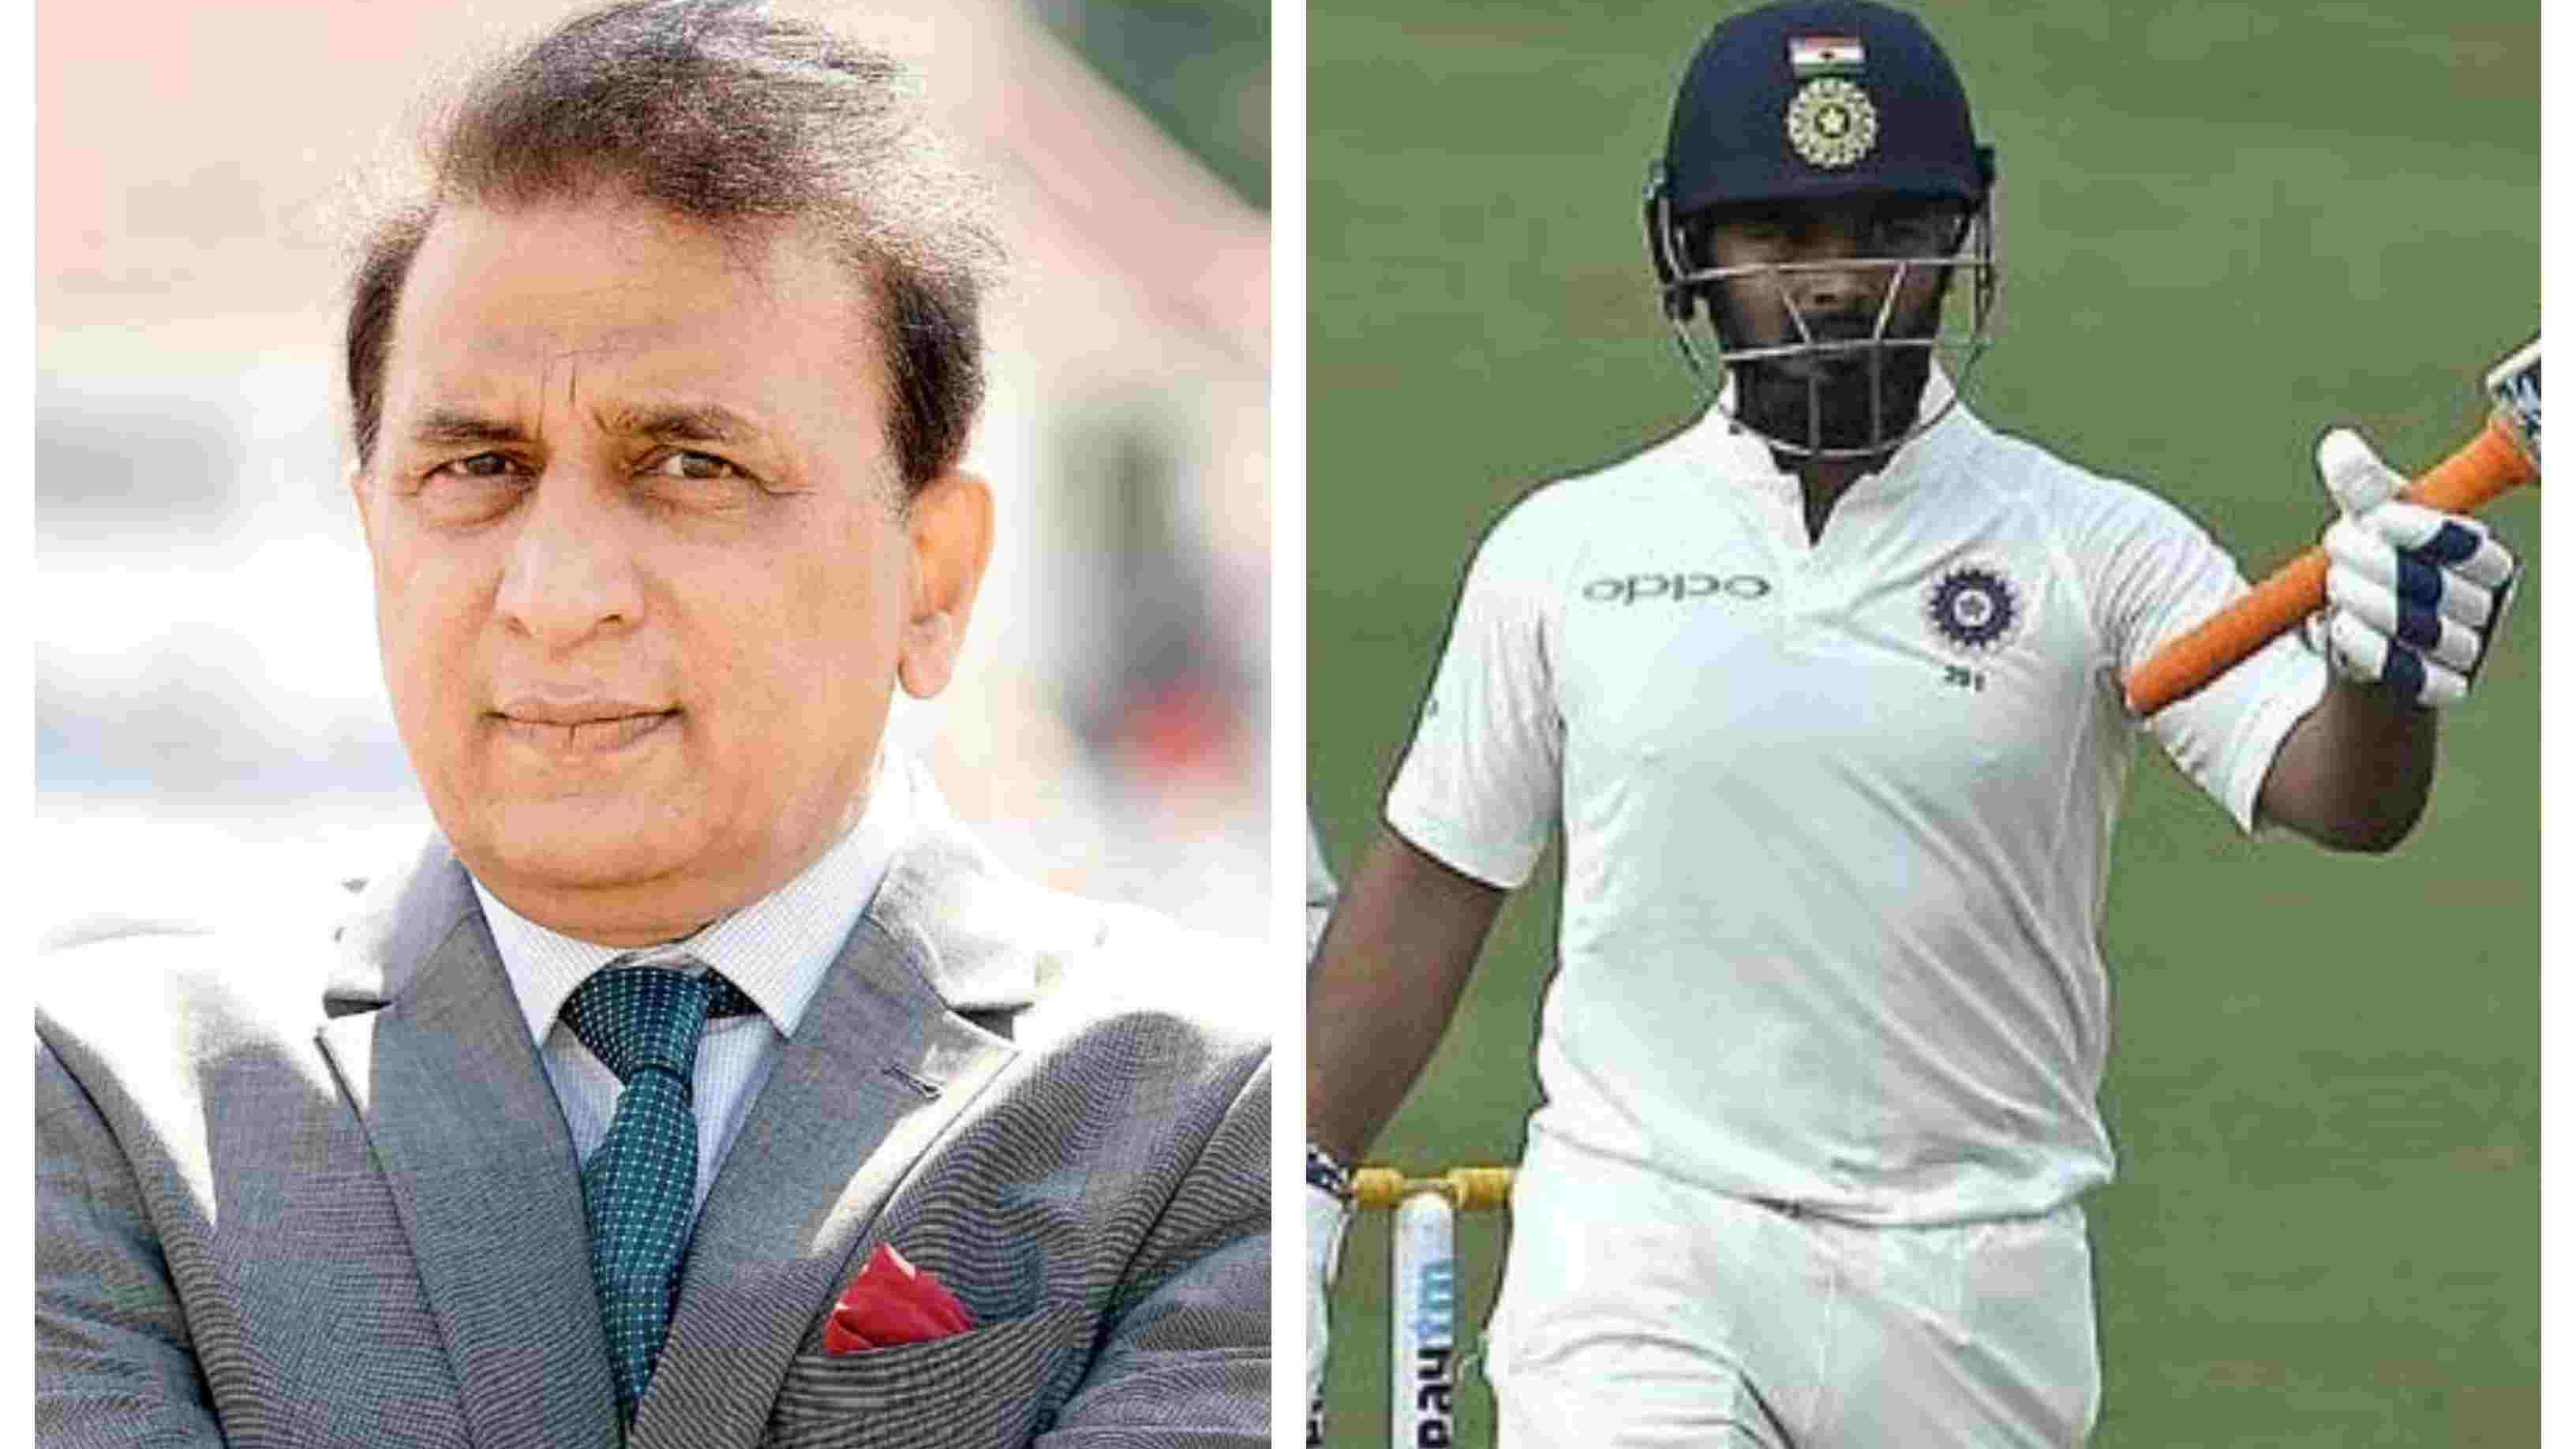 IND v WI 2018: Rishabh Pant is capable of pulling off Adam Gilchrist's like feat, says Sunil Gavaskar